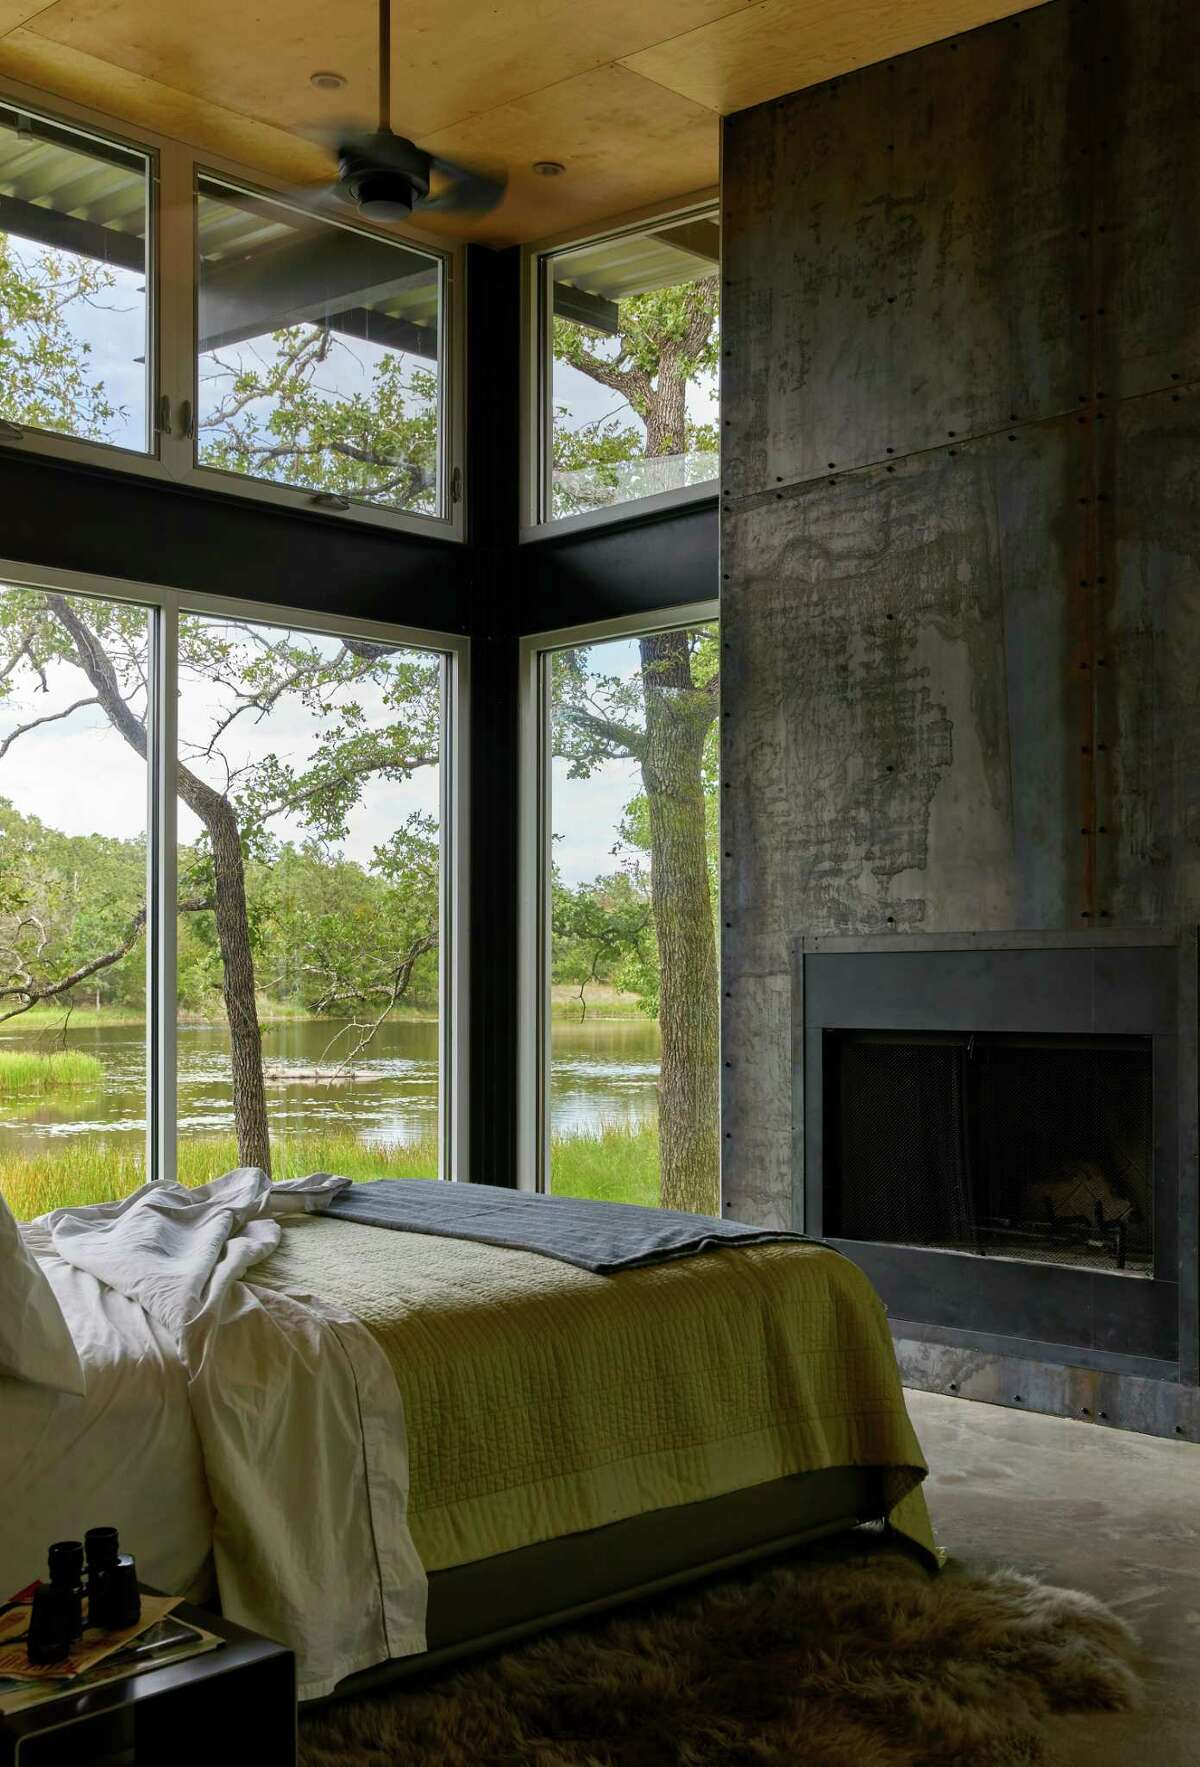 Sheets of Corten steel adorn the fireplaces in the home.